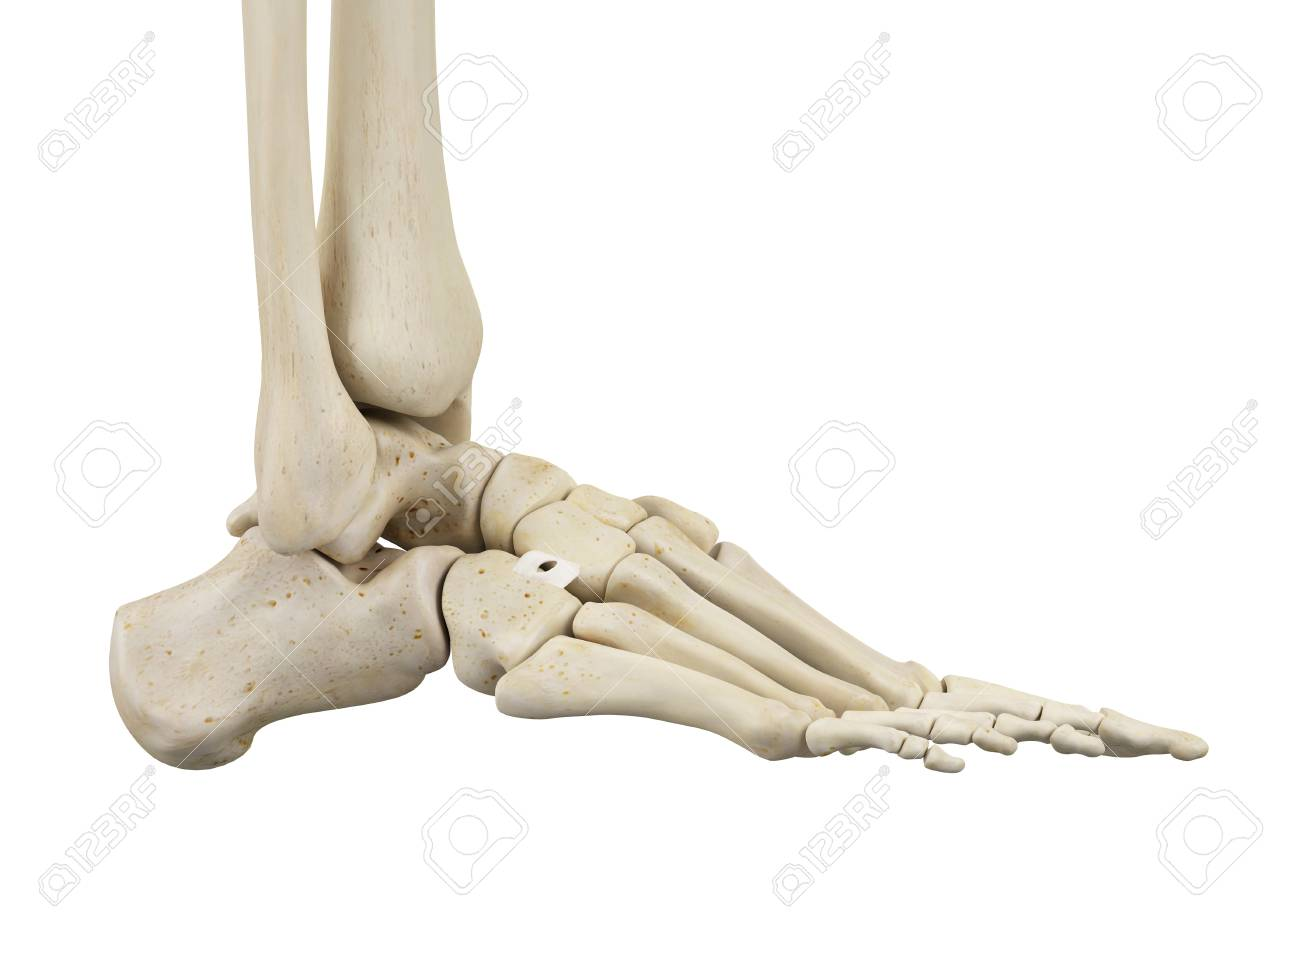 Human Foot Anatomy, Illustration Stock Photo, Picture And Royalty ...